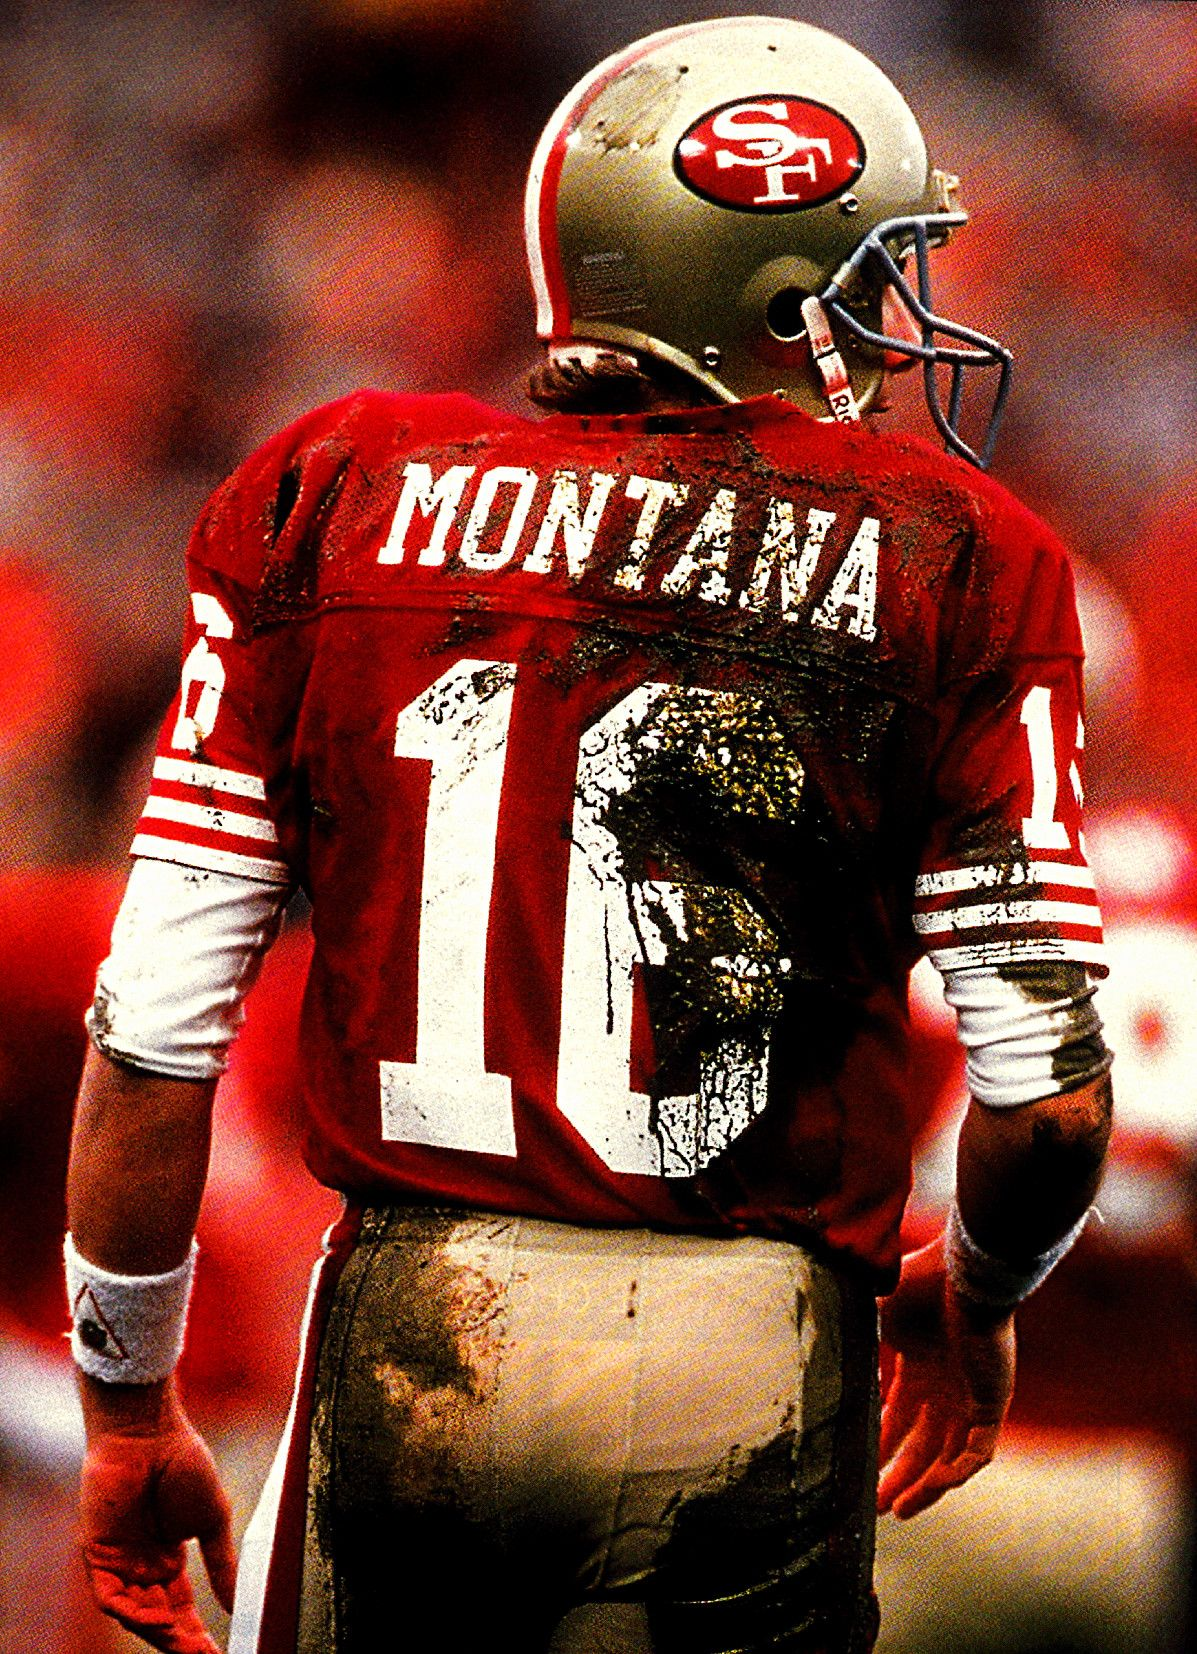 b196913394 Joe Superbowl Rings with SF. Joe Montana - The man the myth the legend.  Threw 11 touchdowns with 0 interceptions in his 4 Super Bowl wins